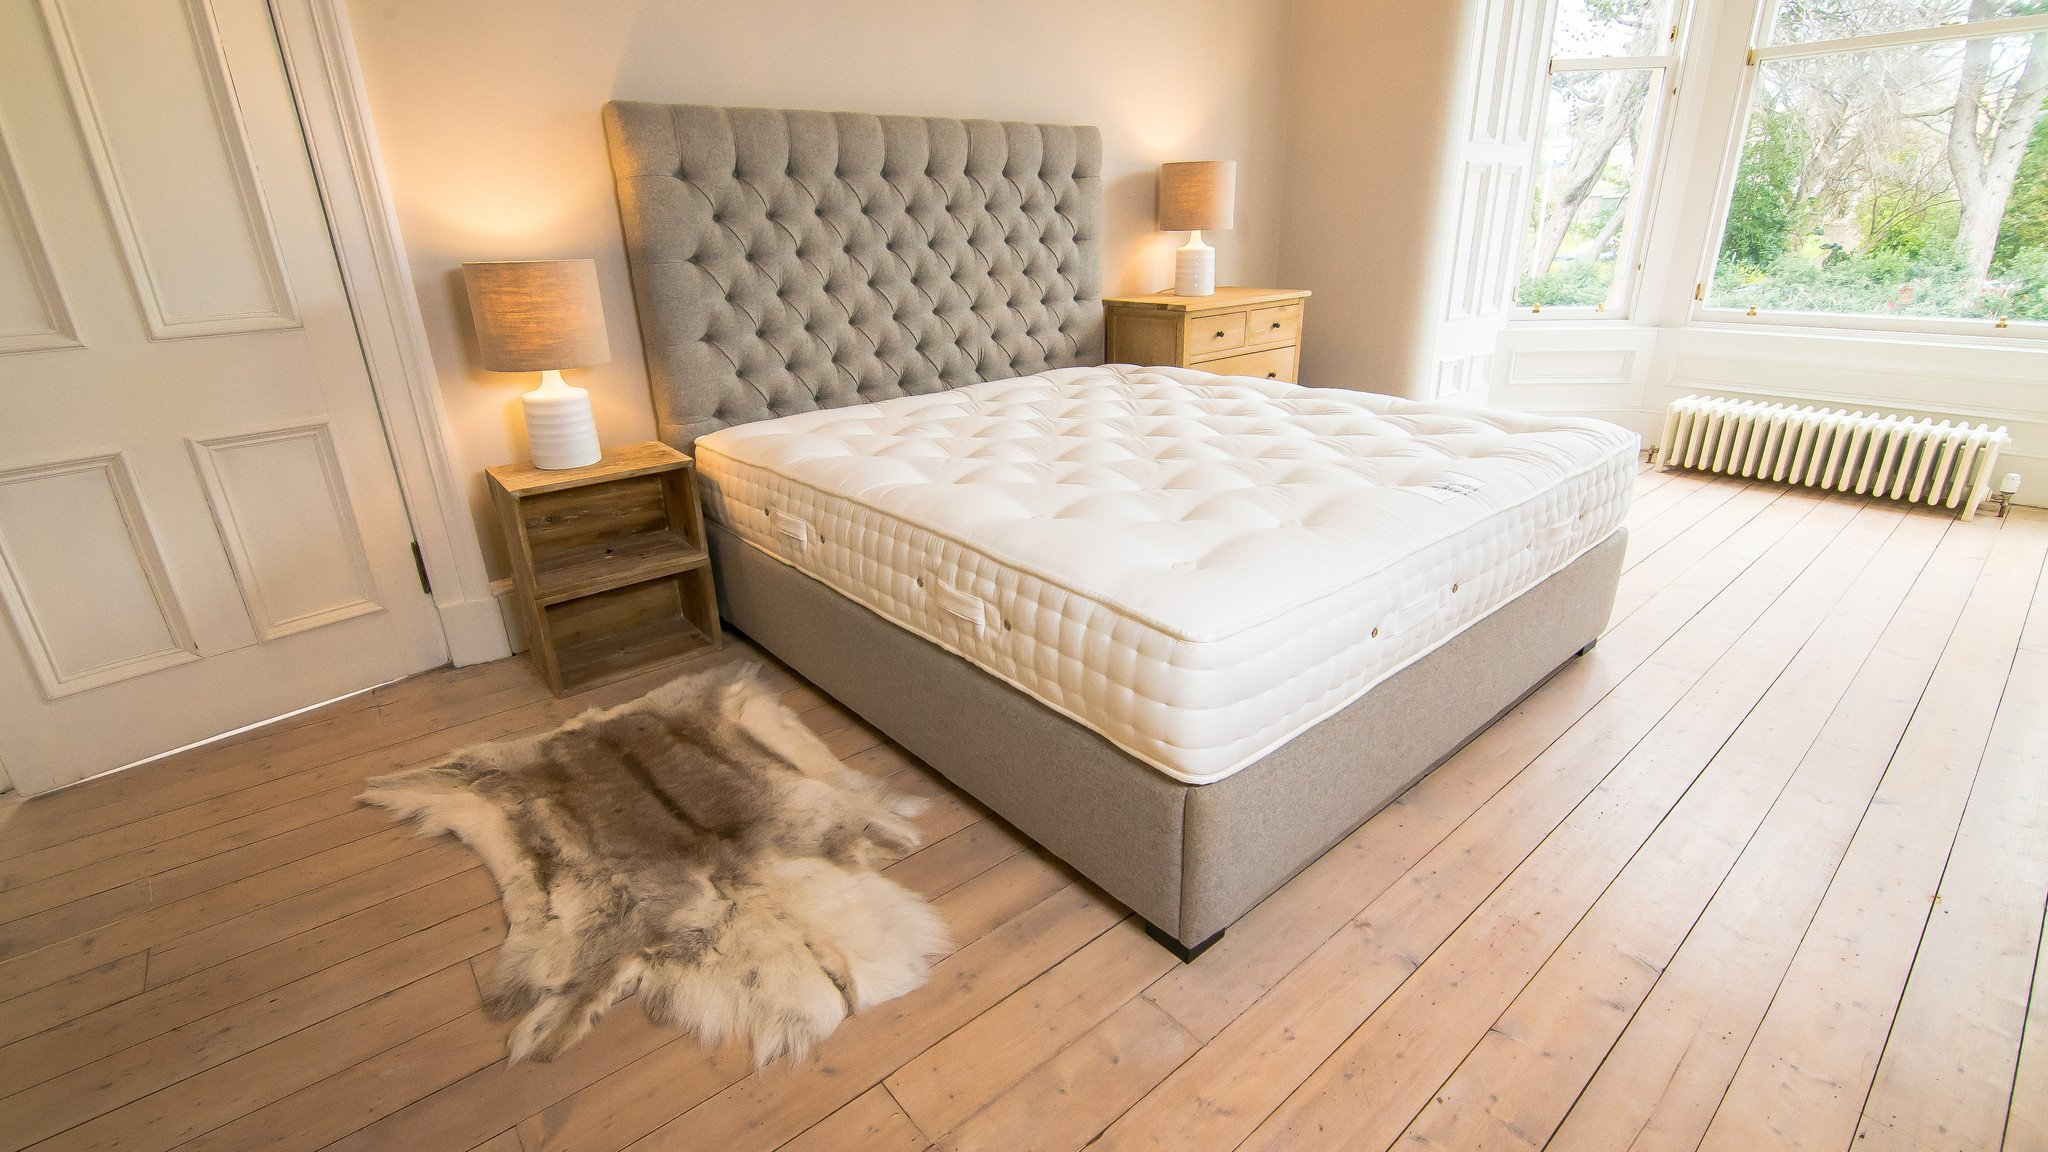 Luxury Mattress Reviews And Buying Guide by www.snoremagazine.com